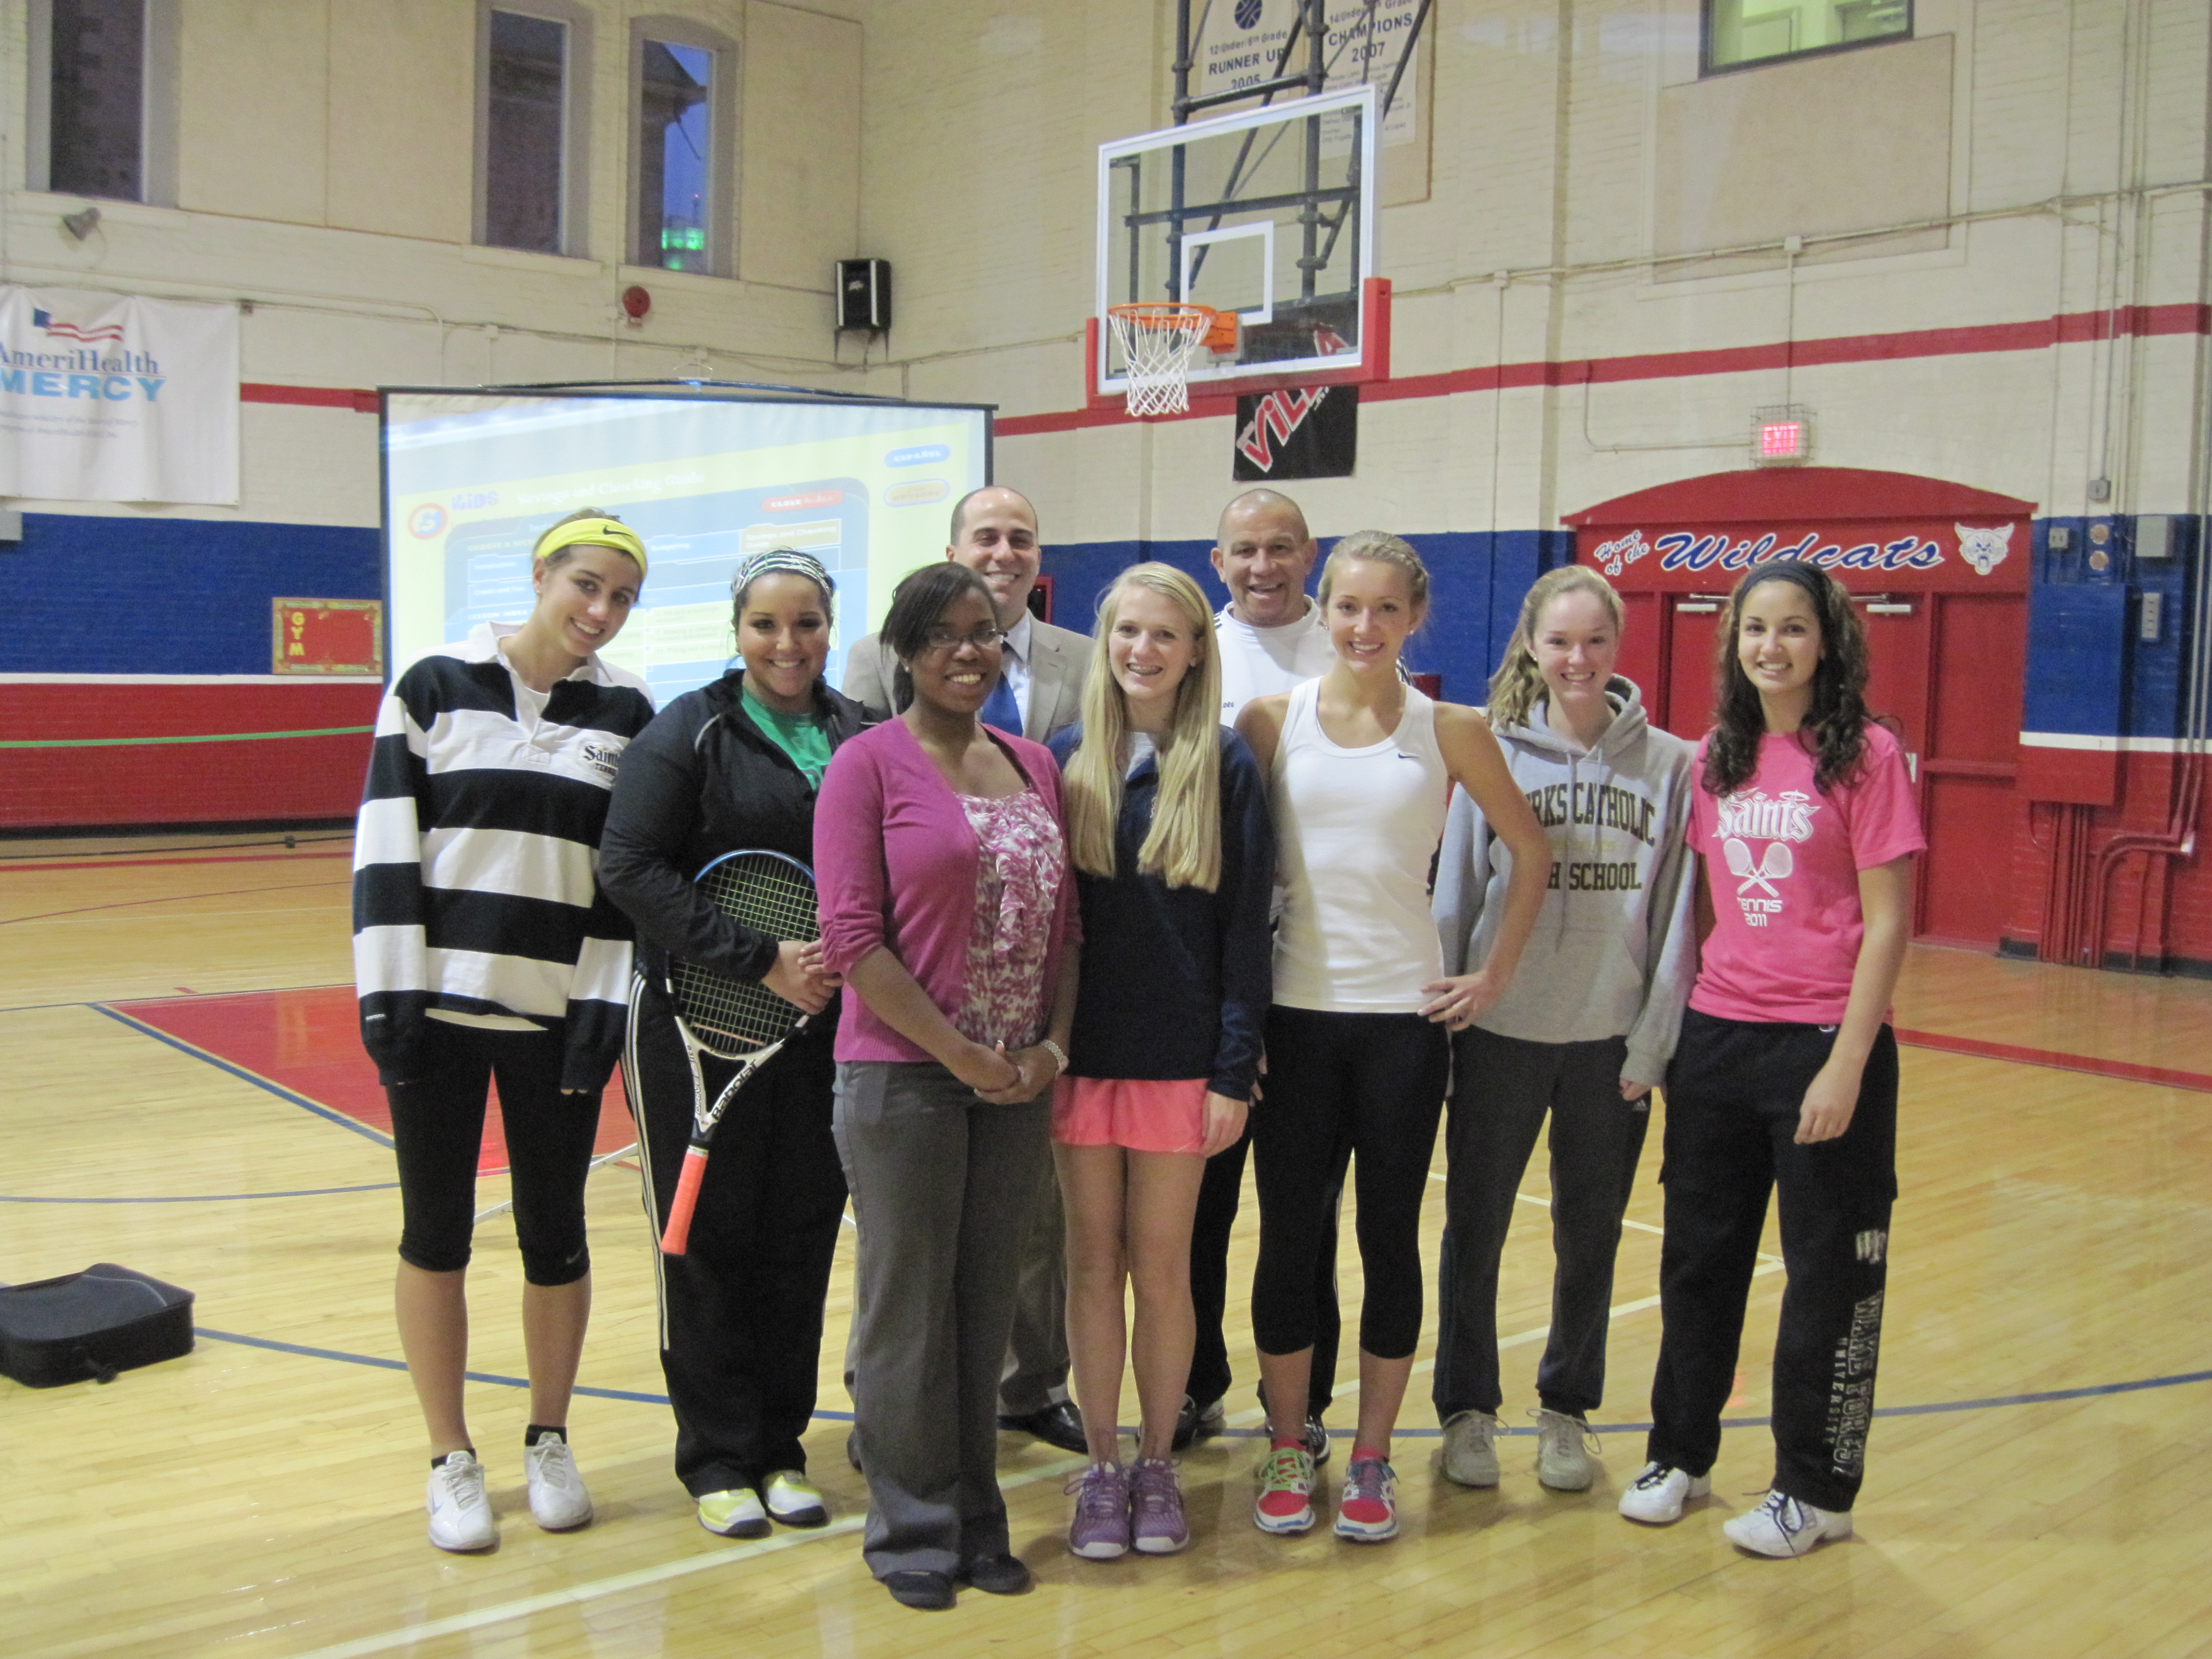 Set Point Tennis Mentors Olivet Boys & Girls Club